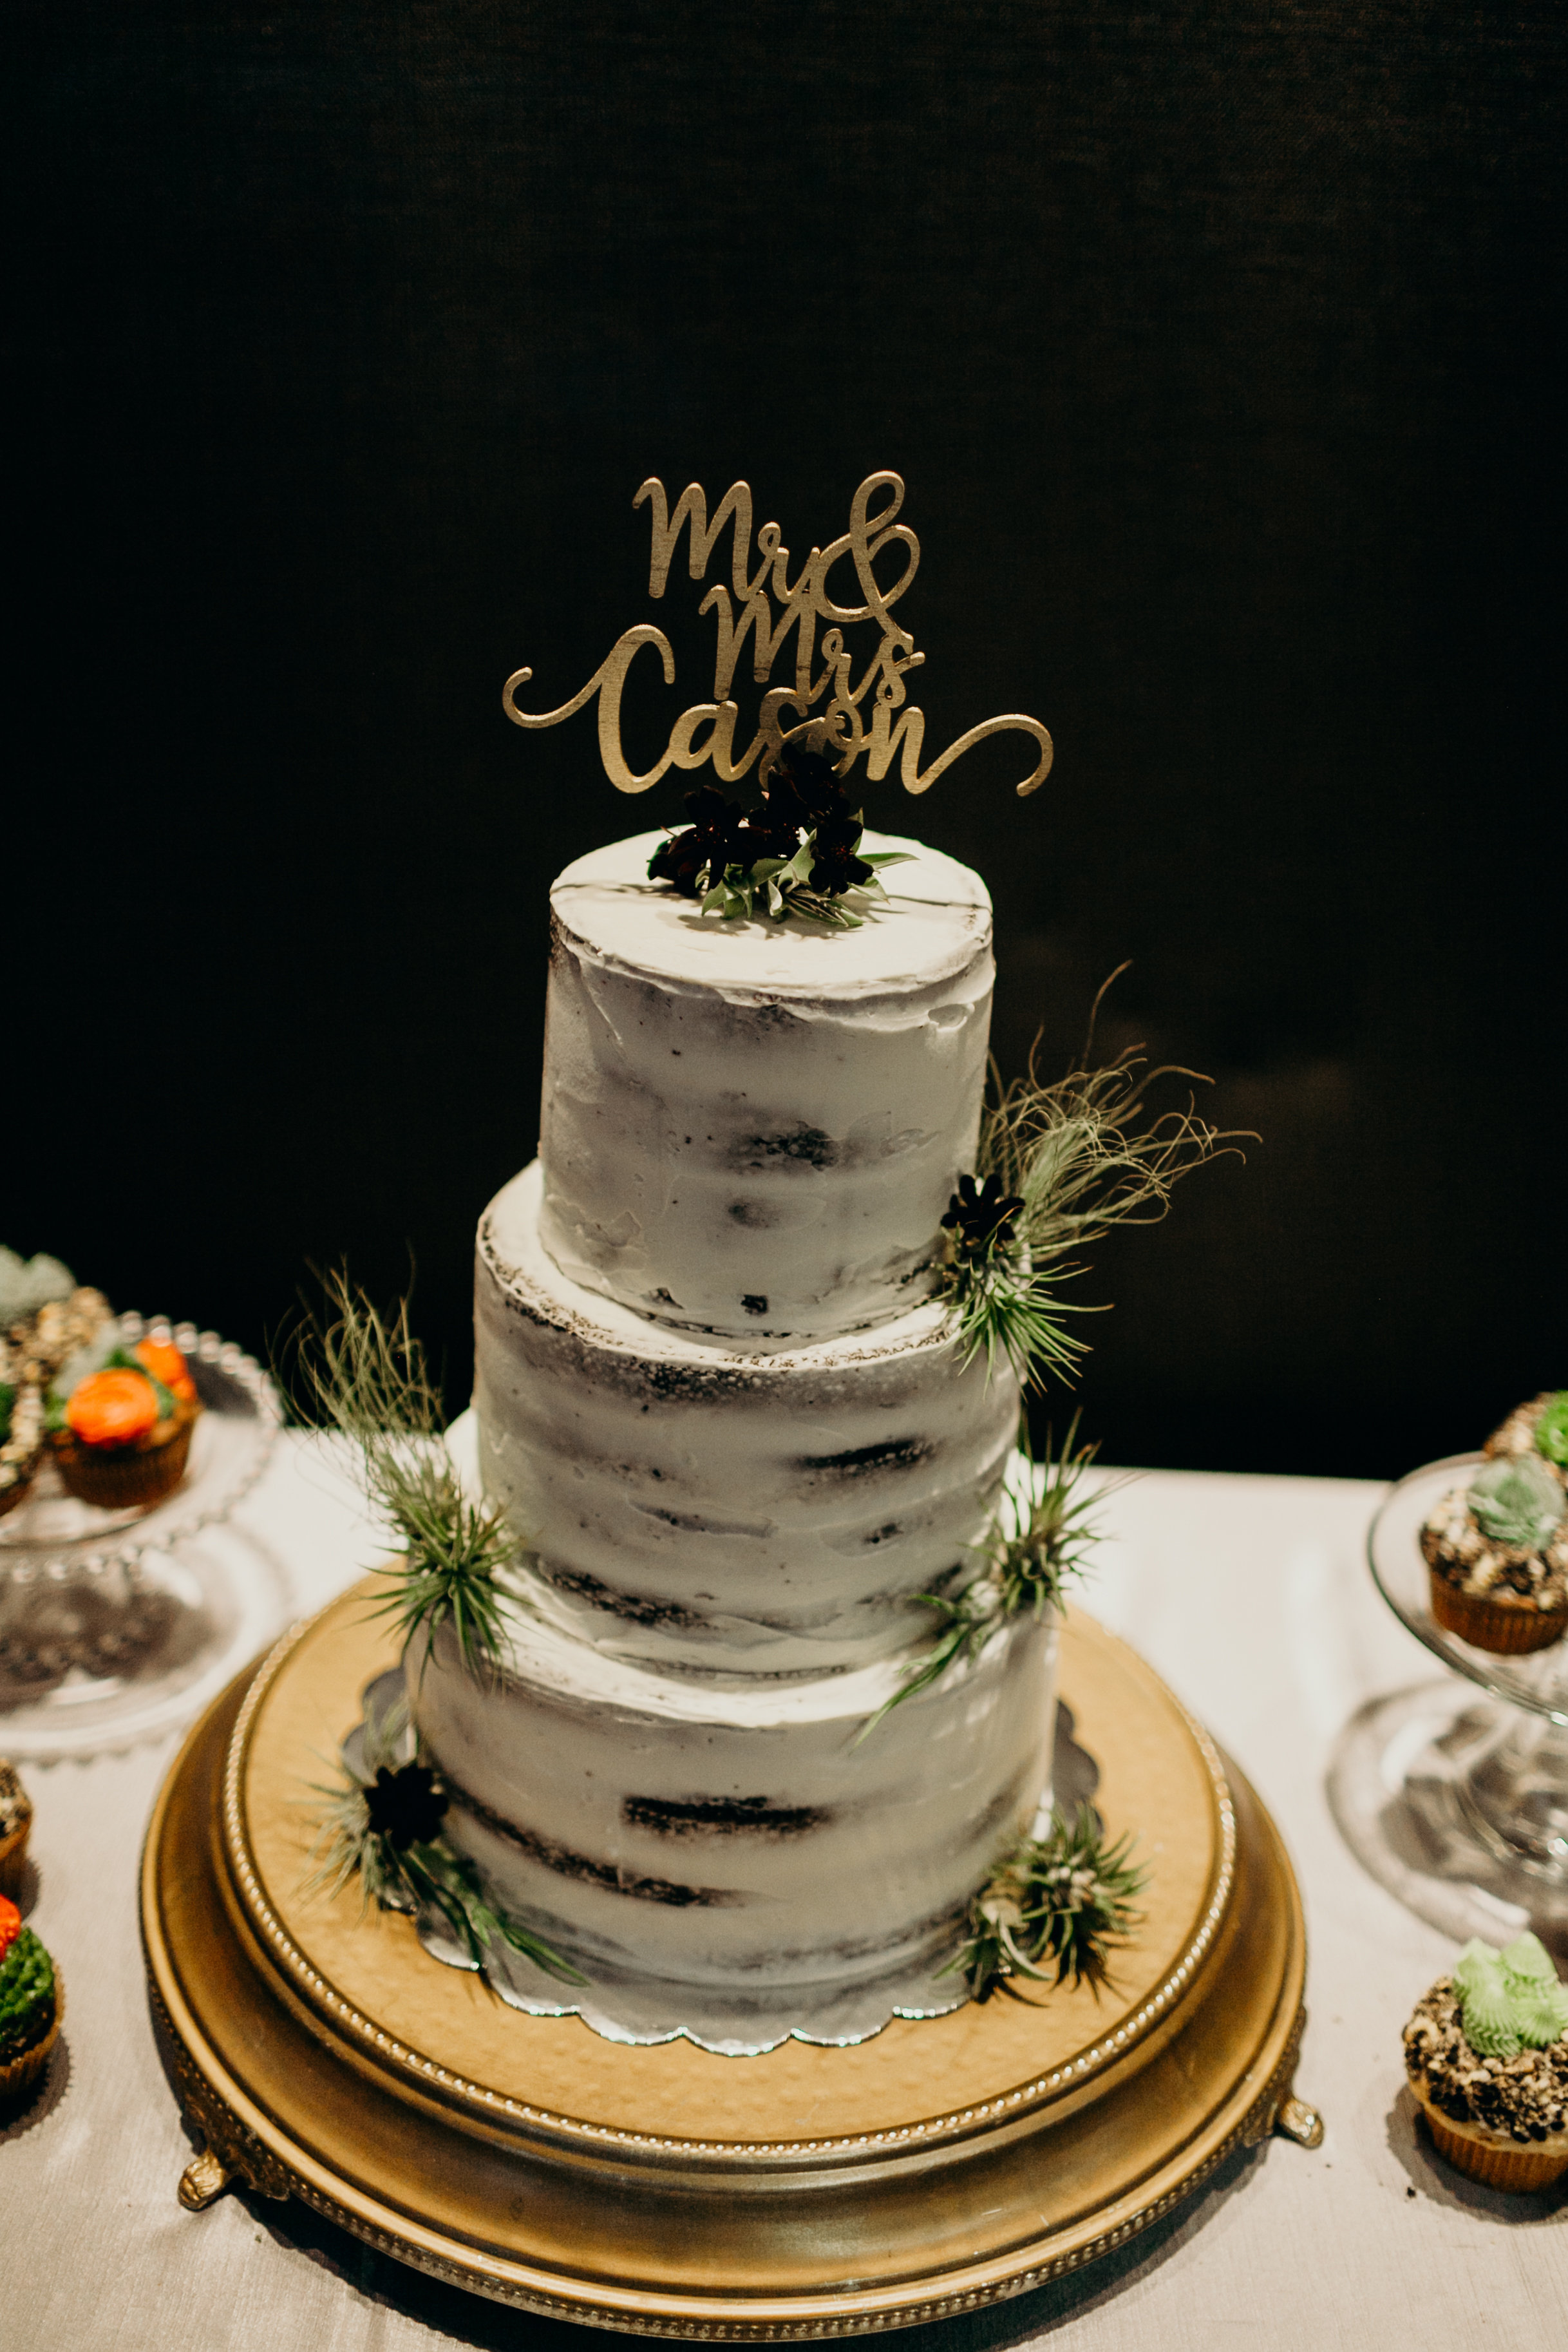 Chelsey and Parker's wedding cake